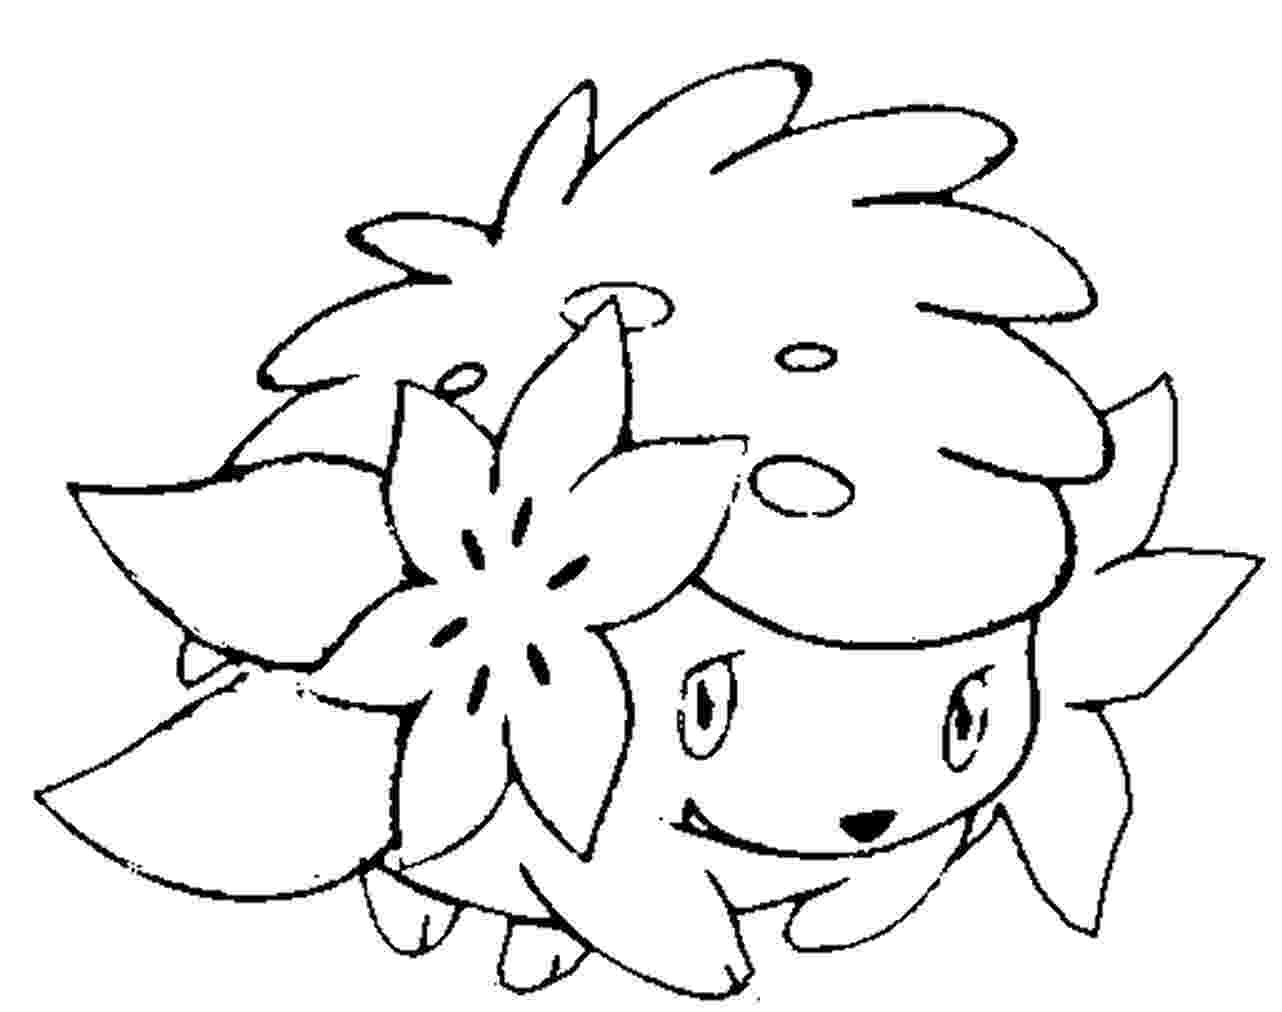 shaymin pokemon coloring pages shaymin in sky form coloring page free printable shaymin coloring pokemon pages